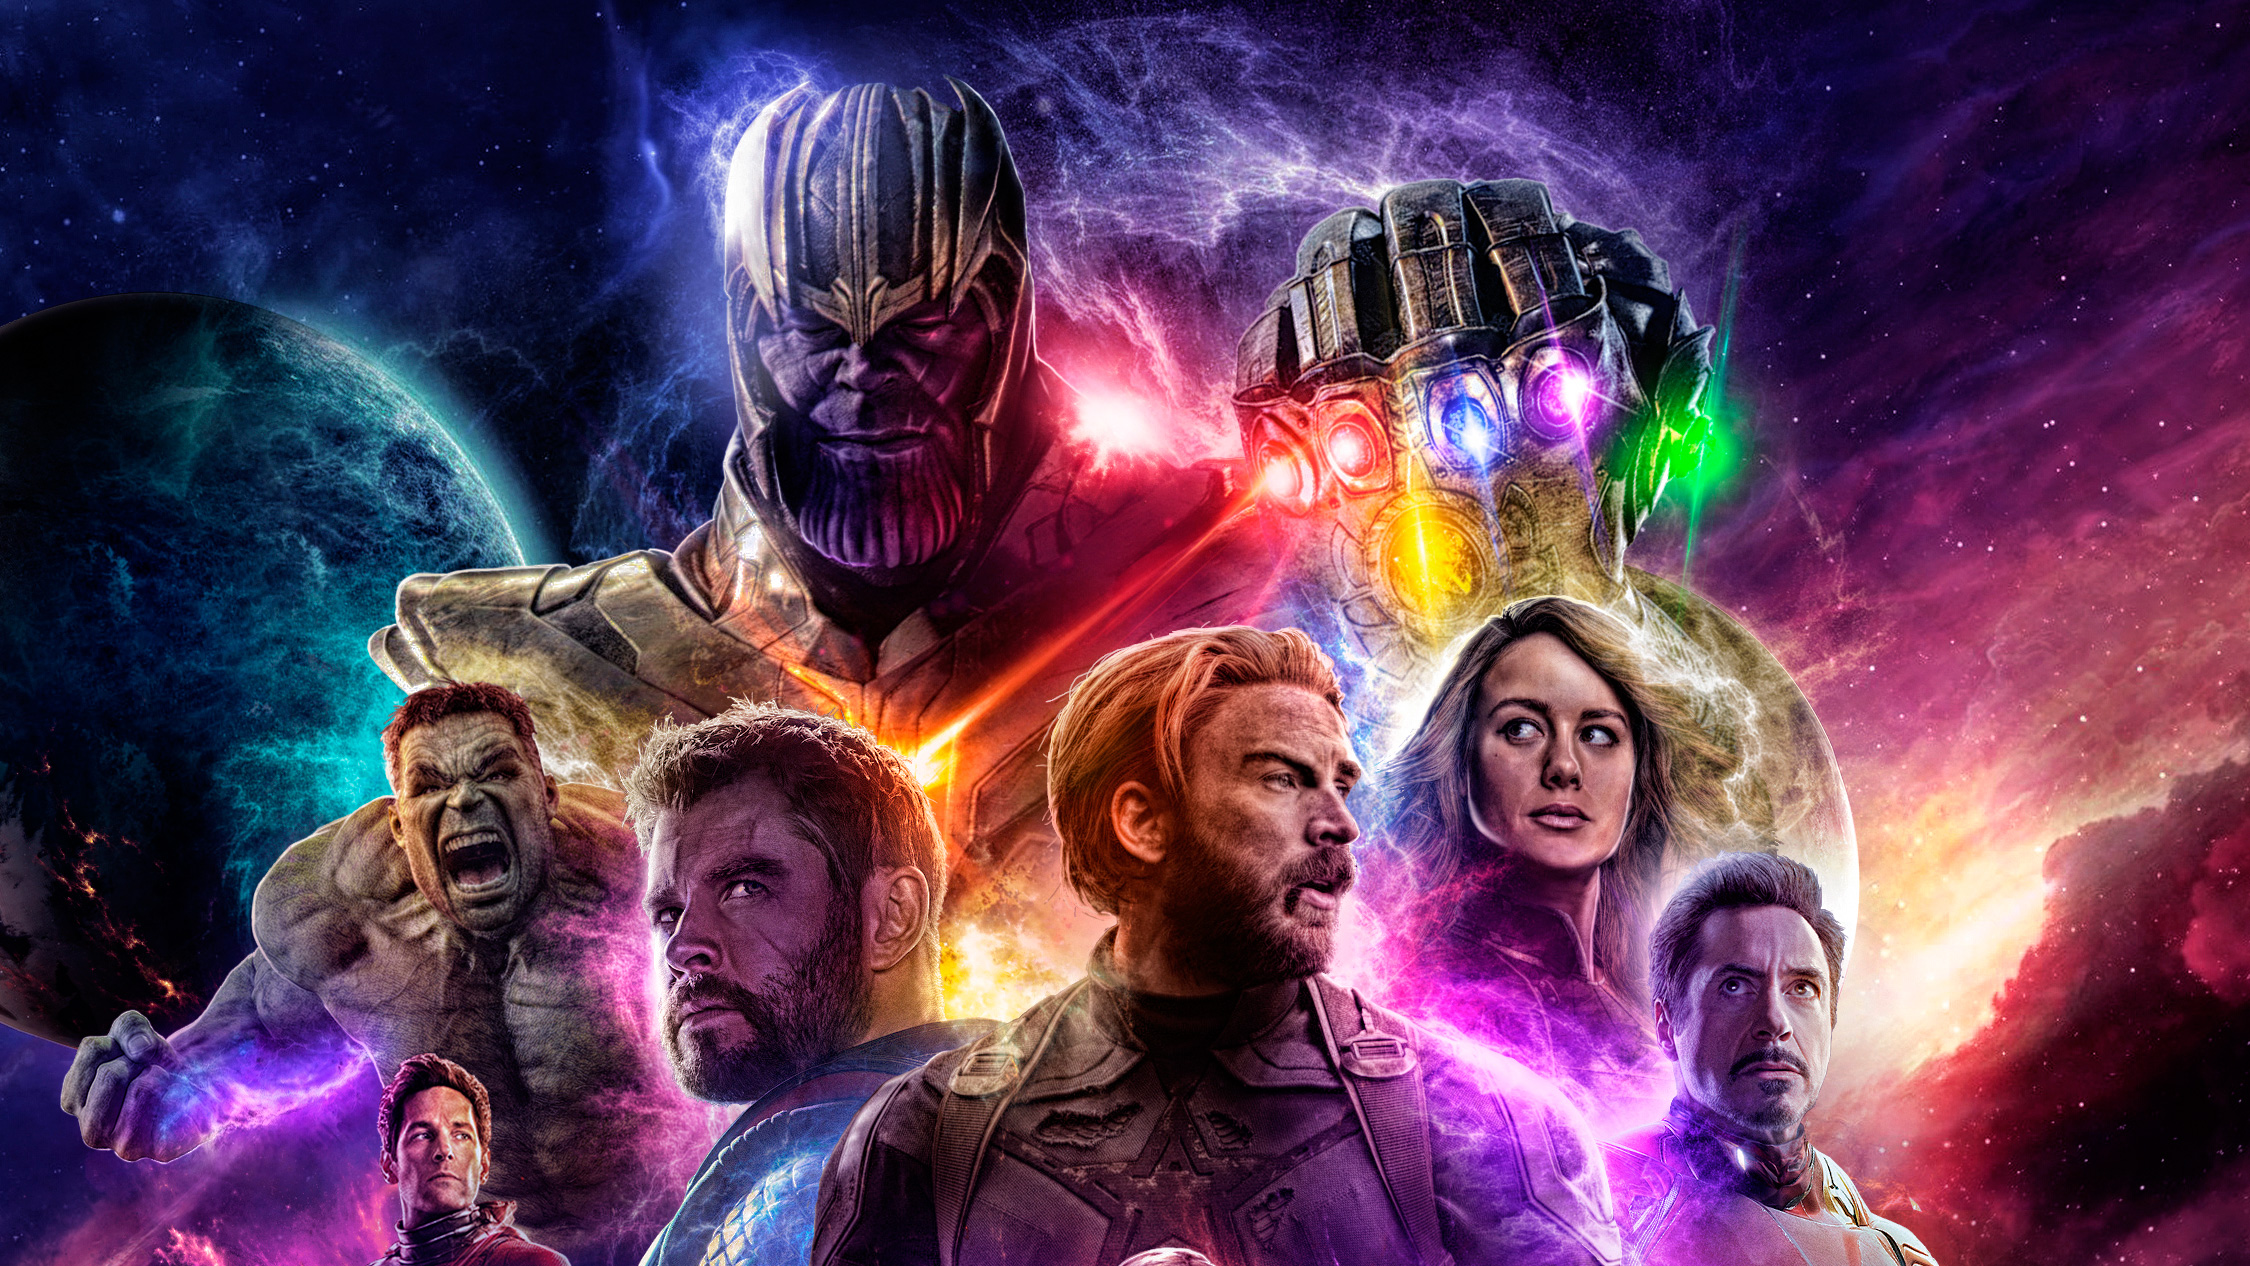 Avengers Endgame Desktop Wallpaper 4k Play Movies One